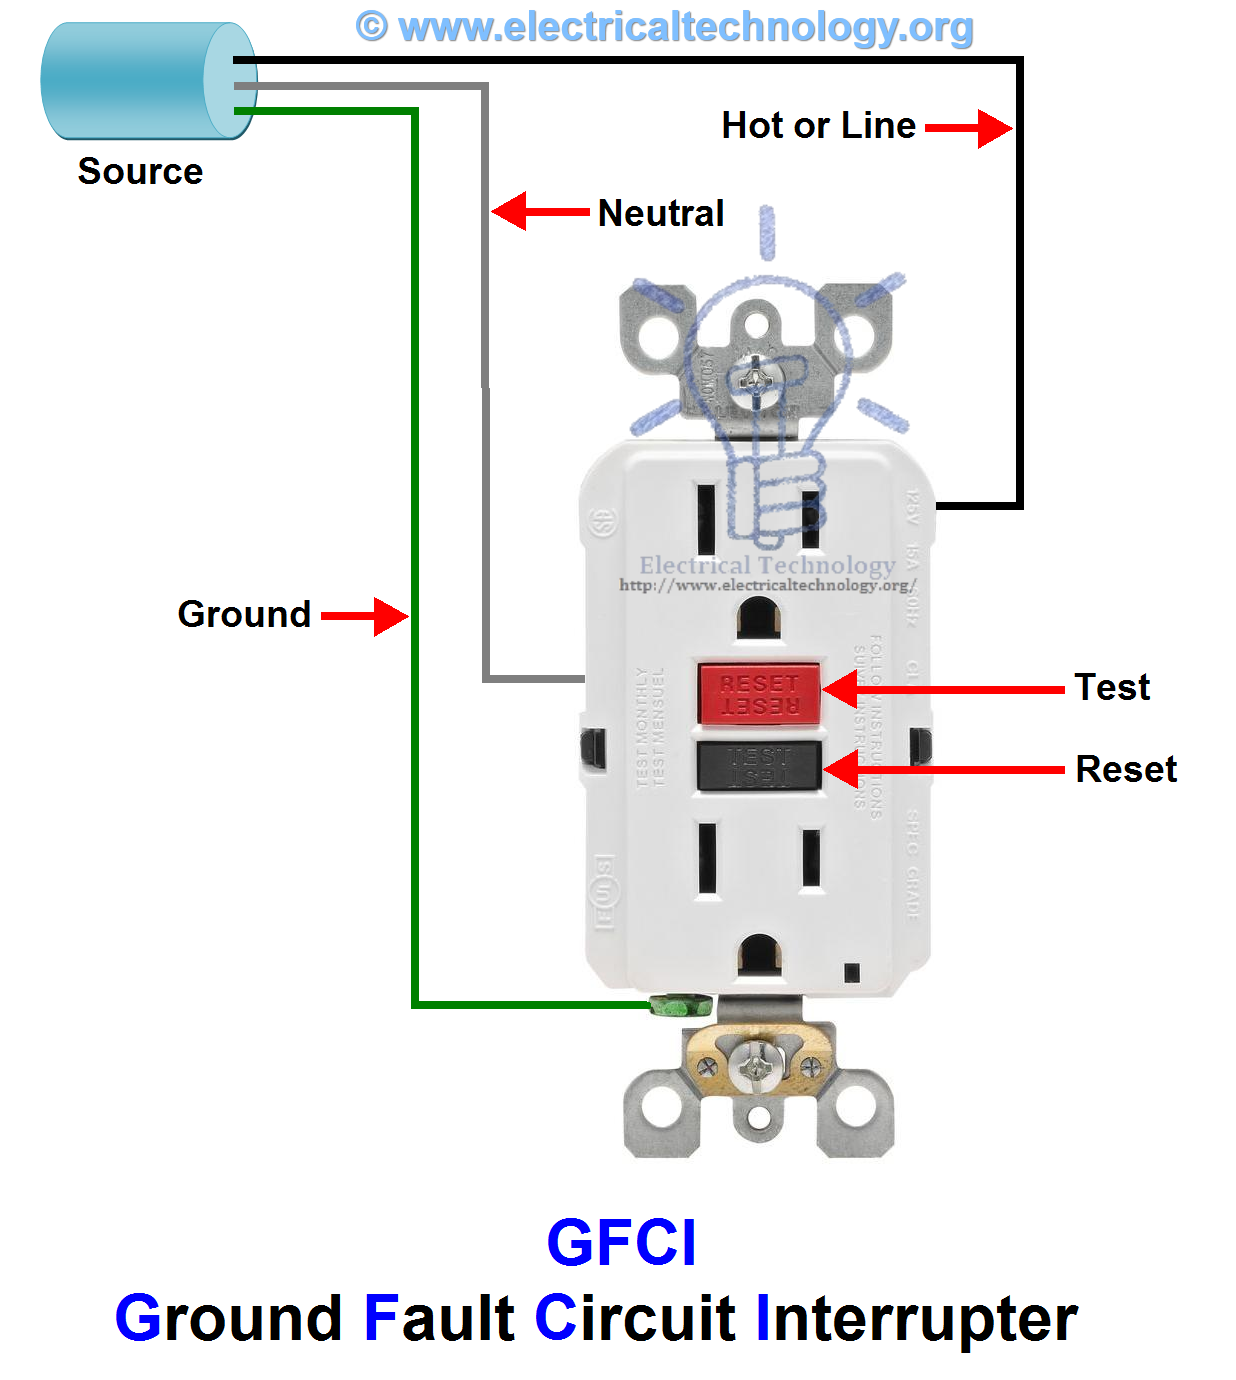 GFCI Ground Fault Circuit Interrupter Electrical Switches, Electrical Wiring,  House Wiring, Plugs,